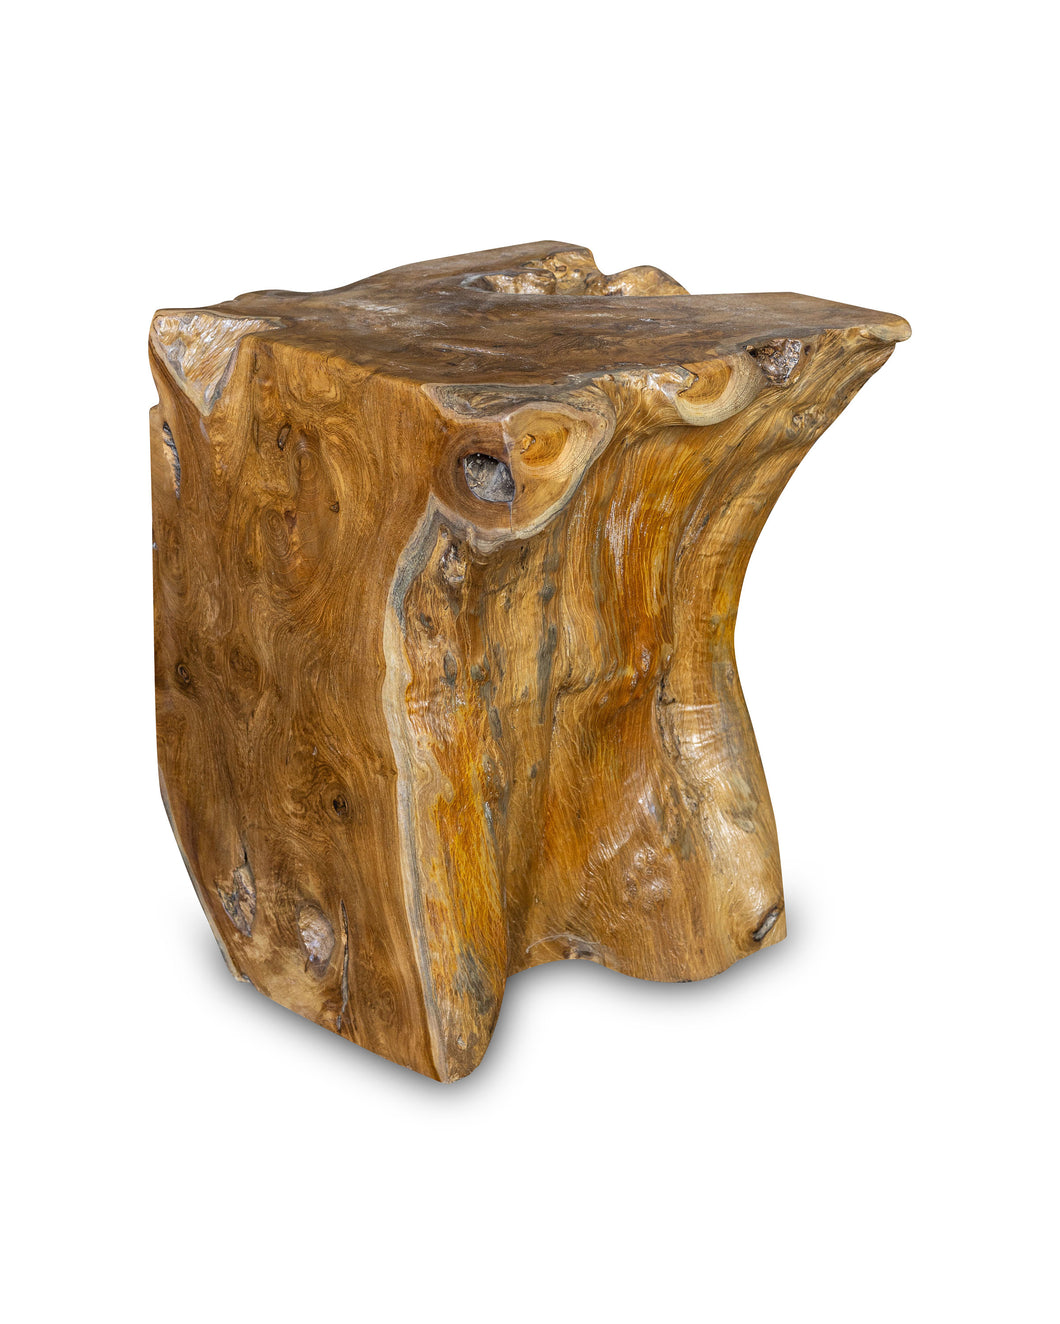 Square Solid Teak Wood Side Table, Natural Tree Stump Stool or End Table #6  15.5